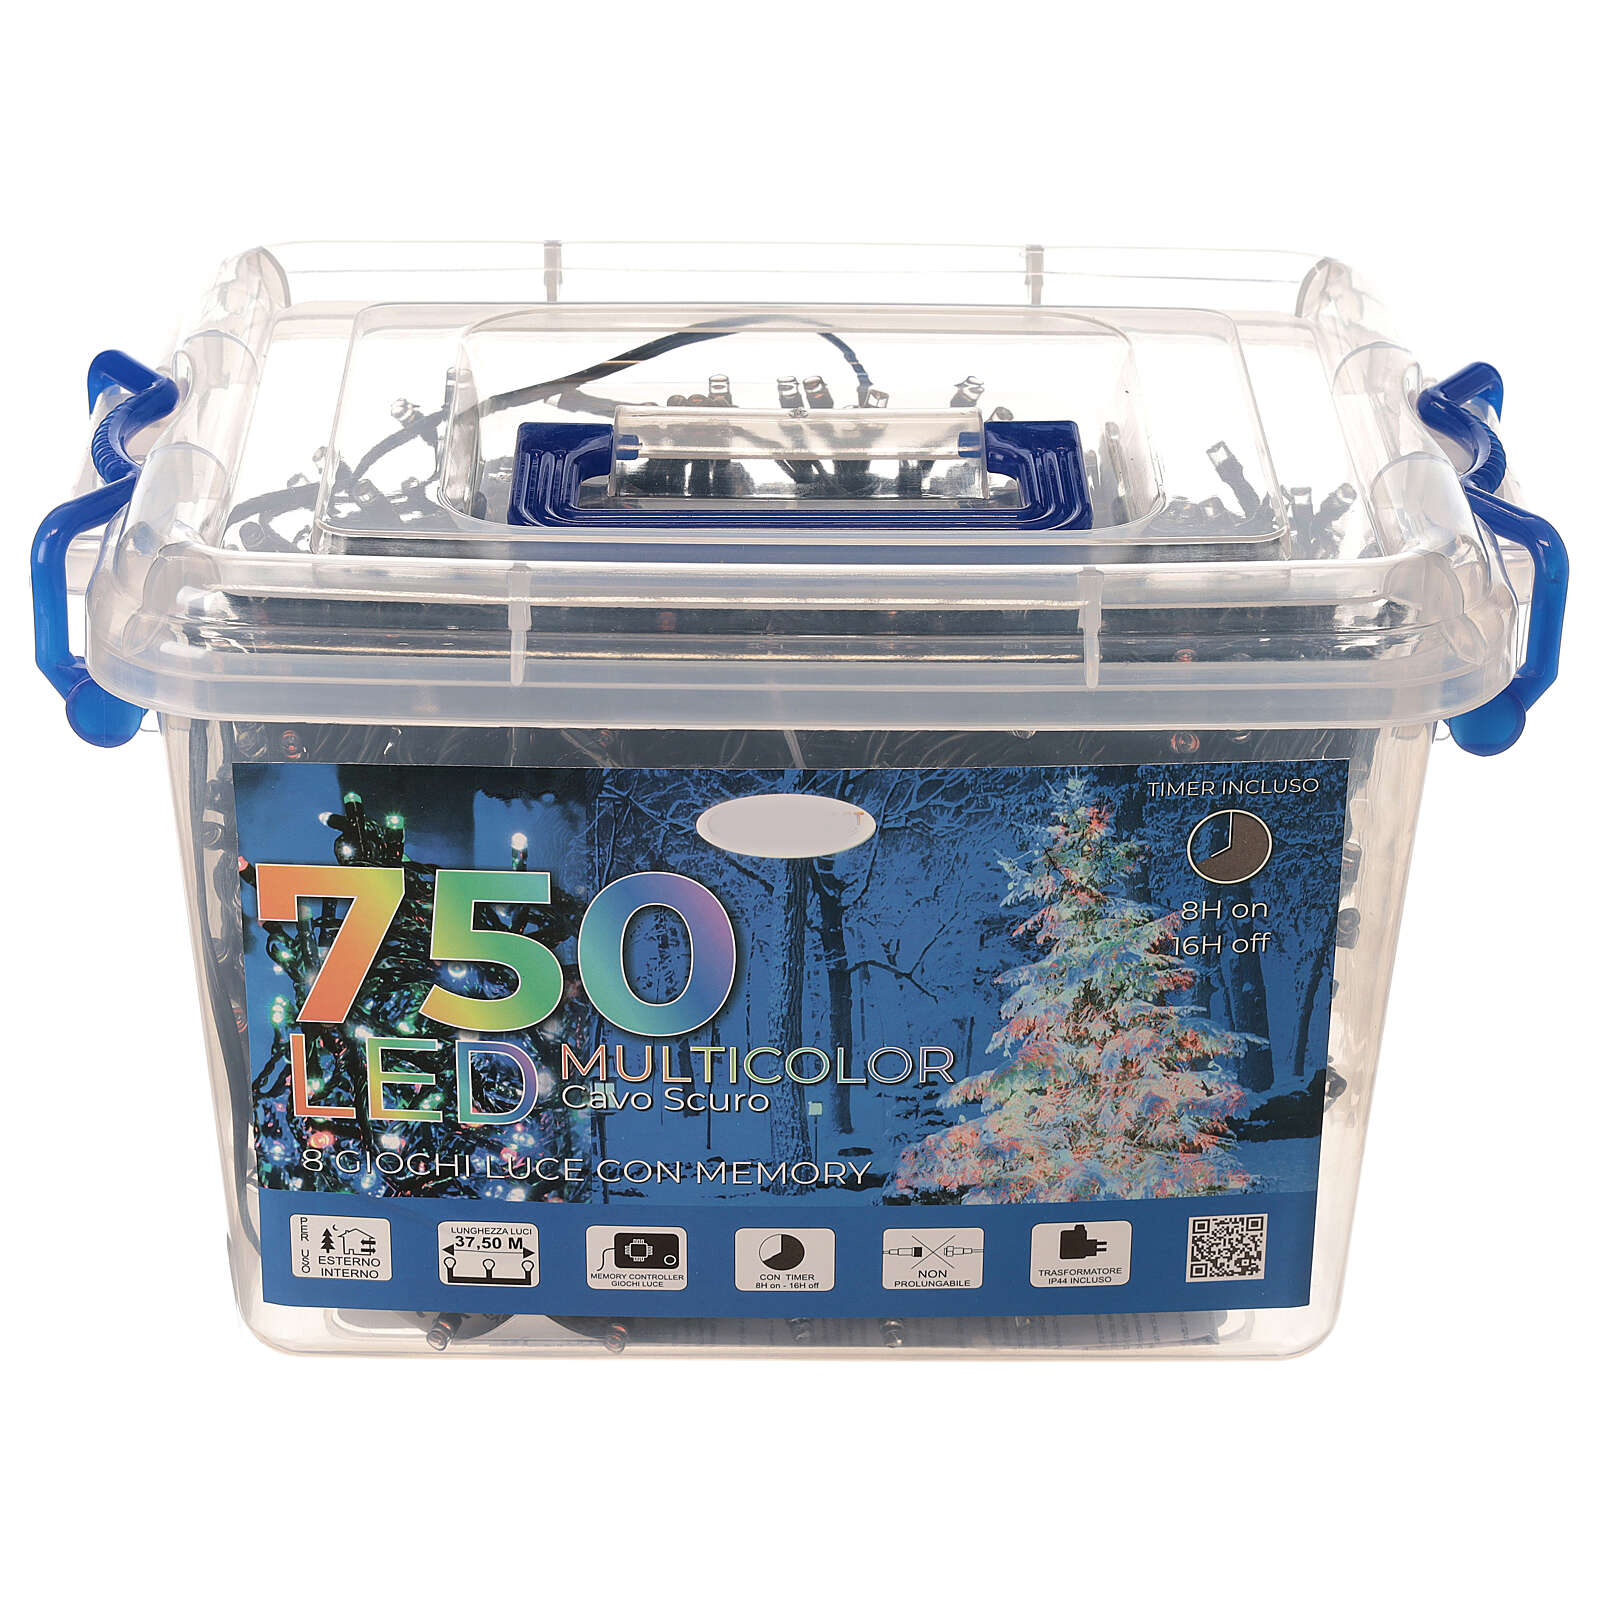 Multi-color Christmas lights 1000 outdoor indoor 50 m 3